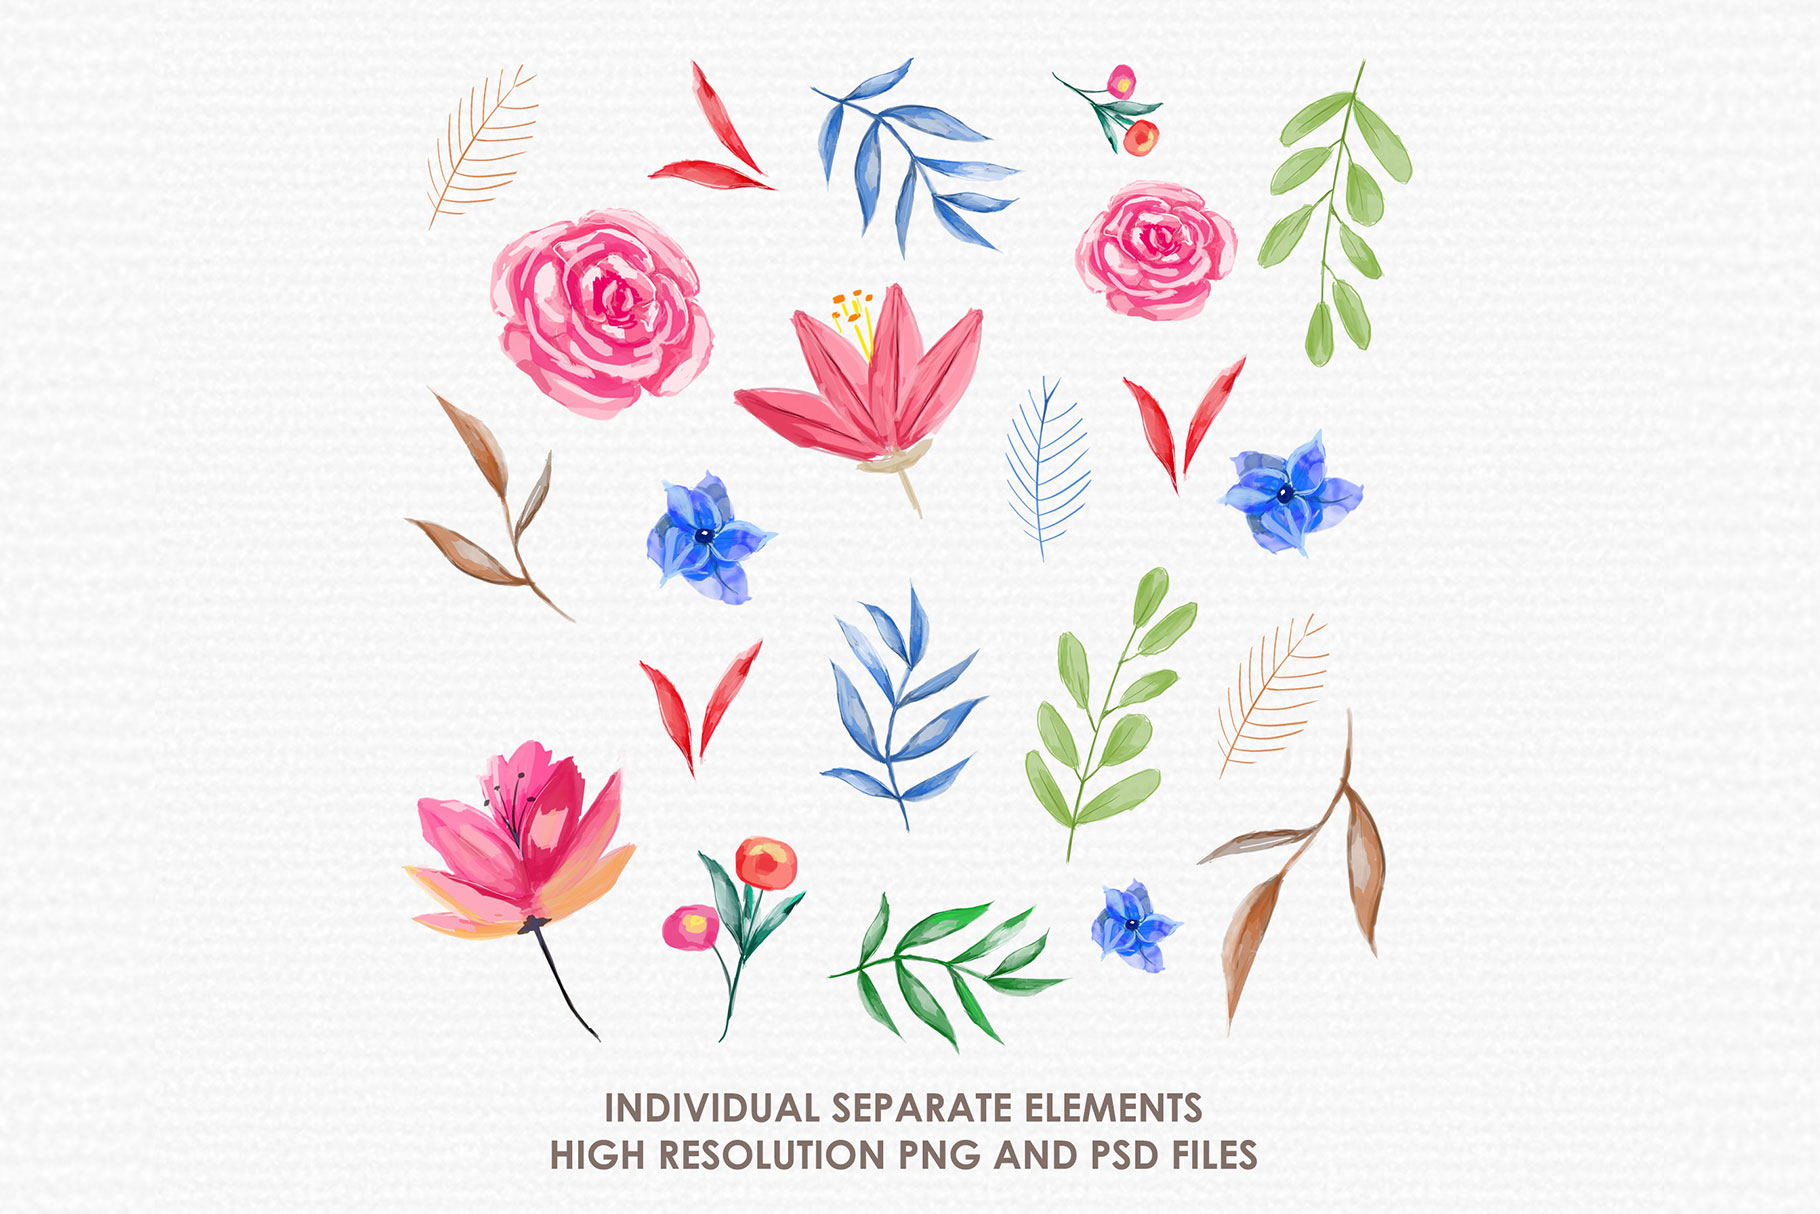 Blue Aster - Digital Watercolor Floral Flower Style Clipart example image 2